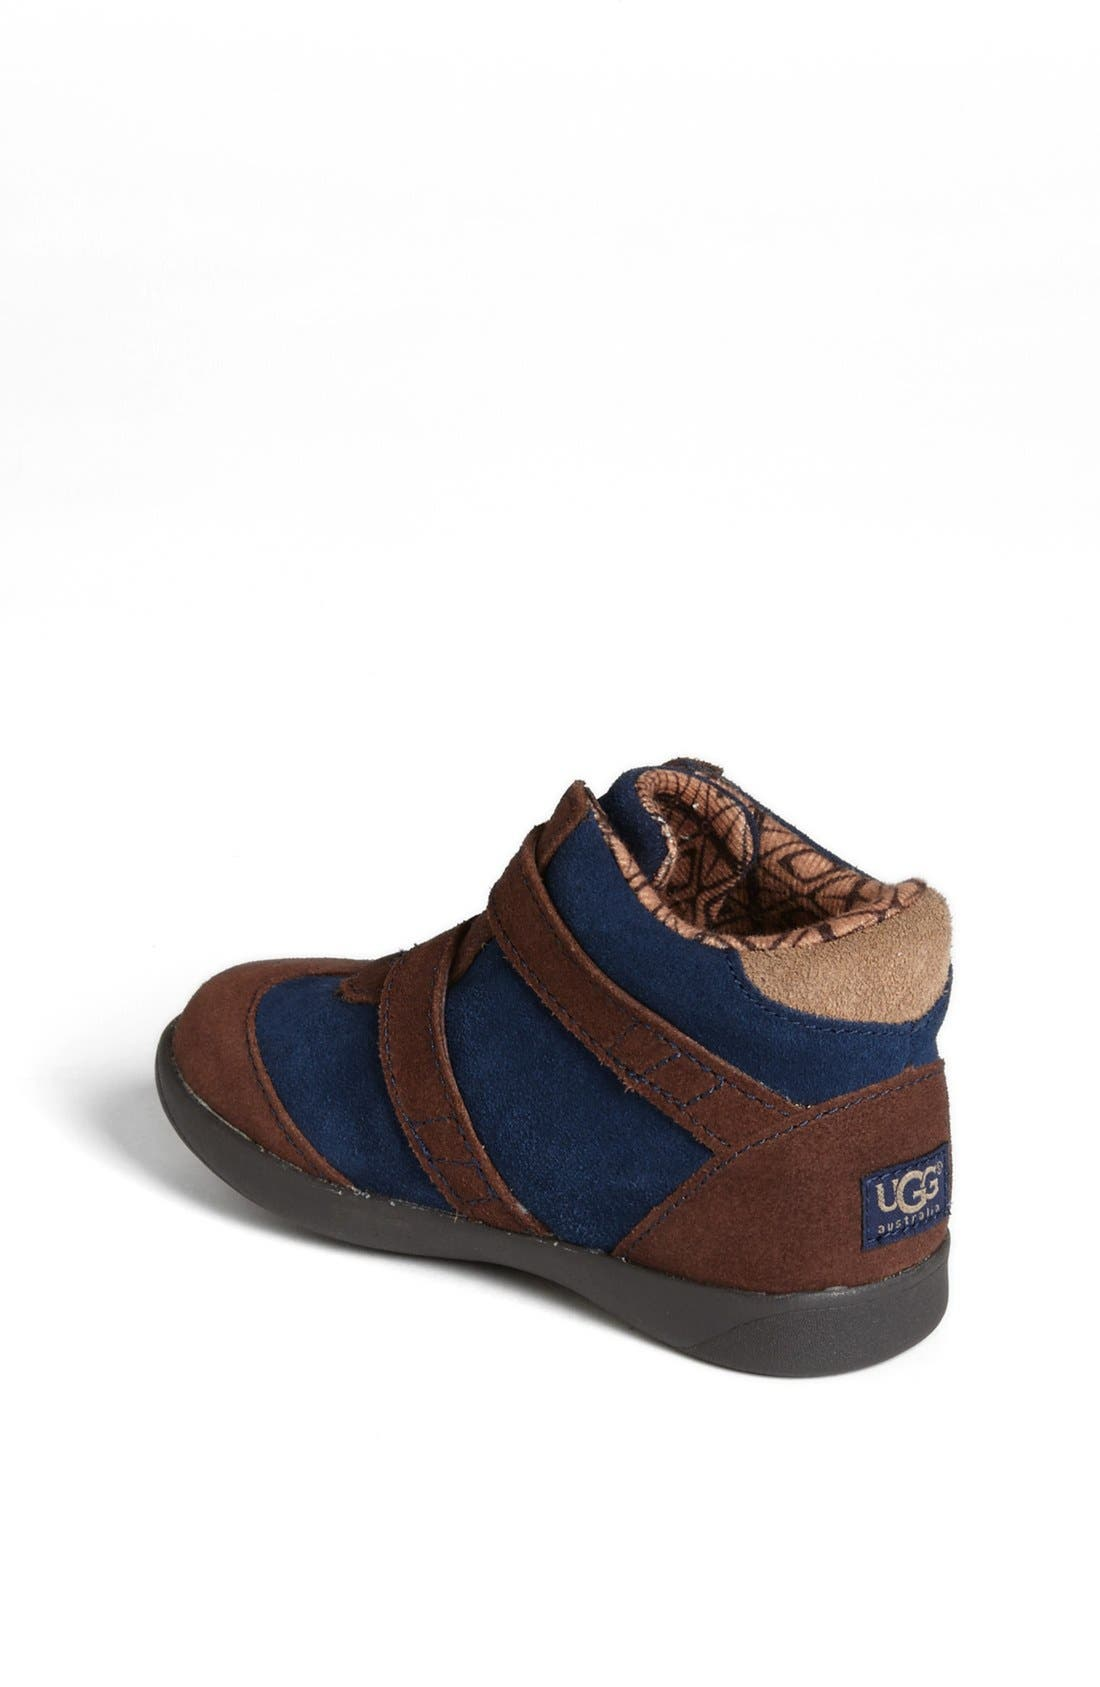 Alternate Image 2  - UGG® Australia 'Speedy' High Top Sneaker (Walker & Toddler)